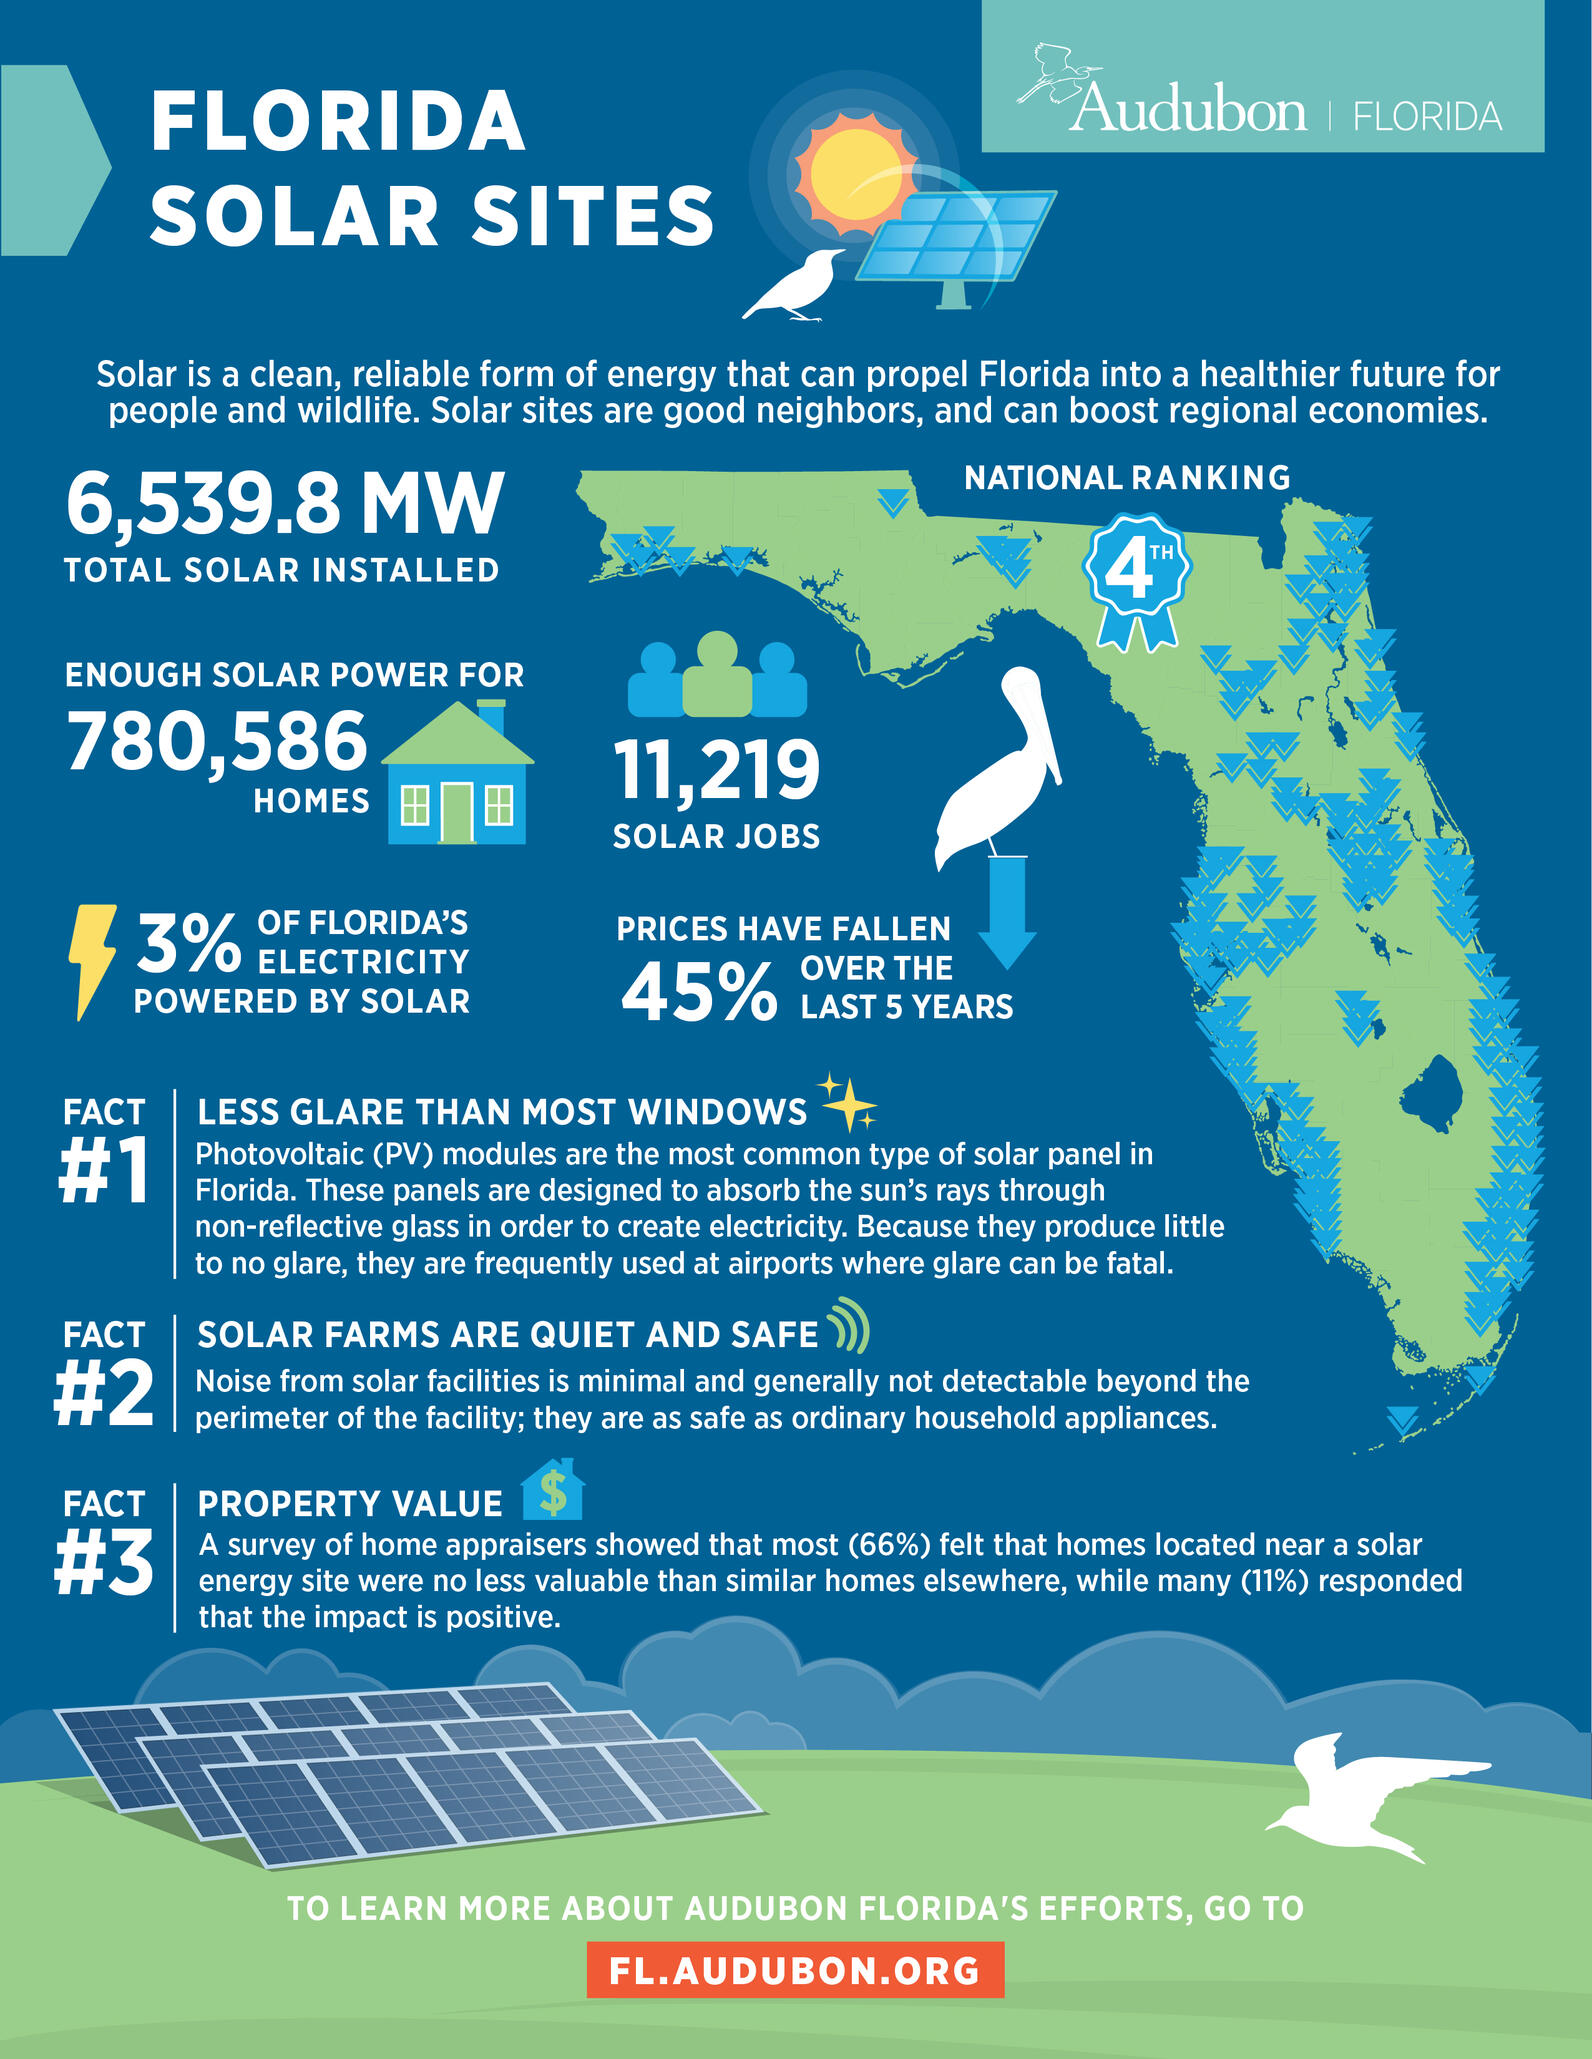 An infographic showing Florida solar sites and busting common solar myths.